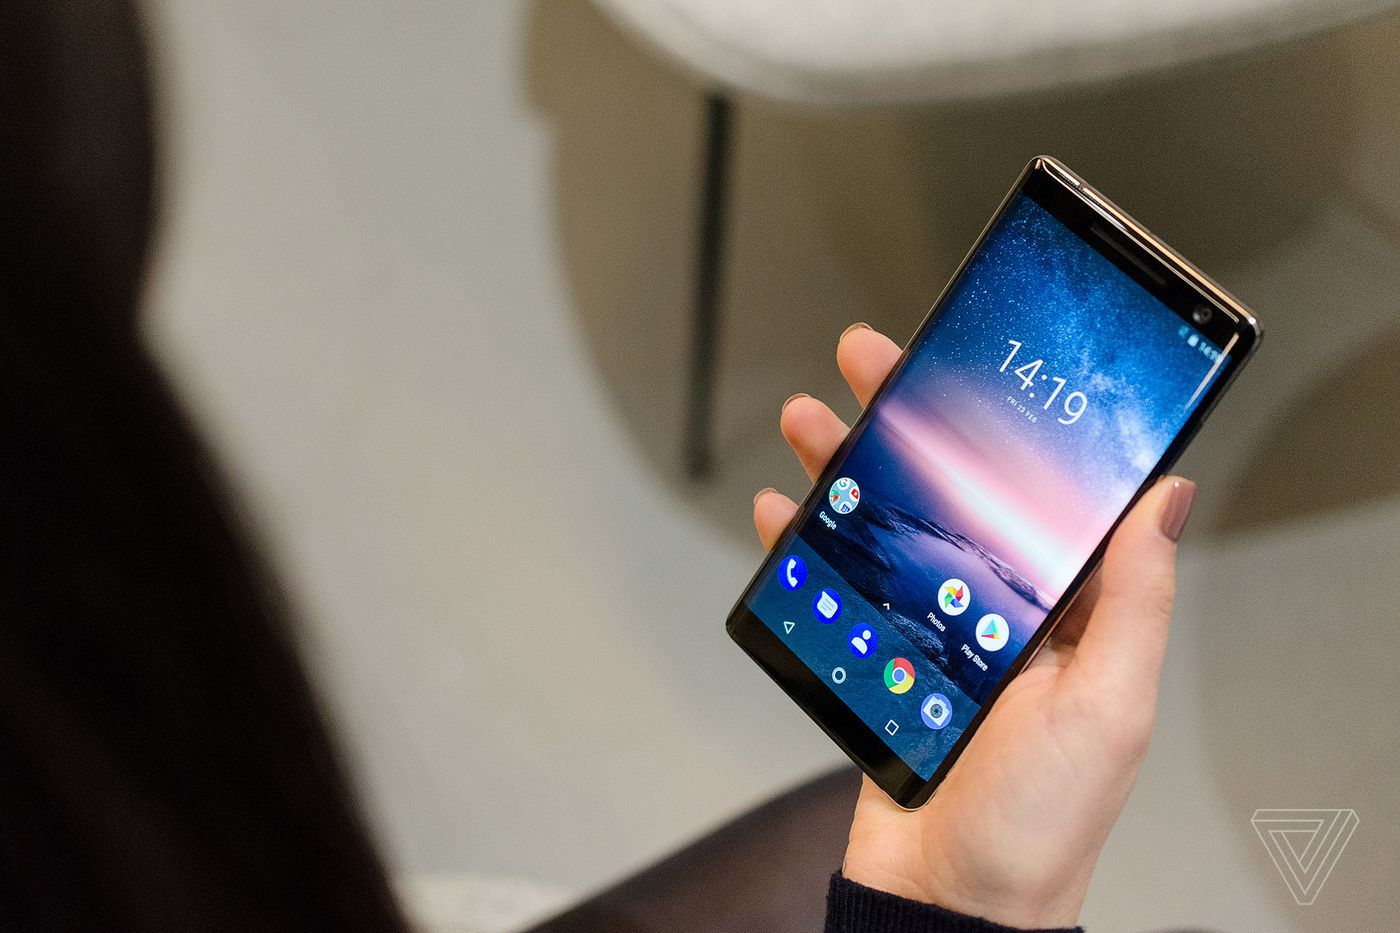 The Nokia 8 Sirocco is a curved glass Android flagship with no